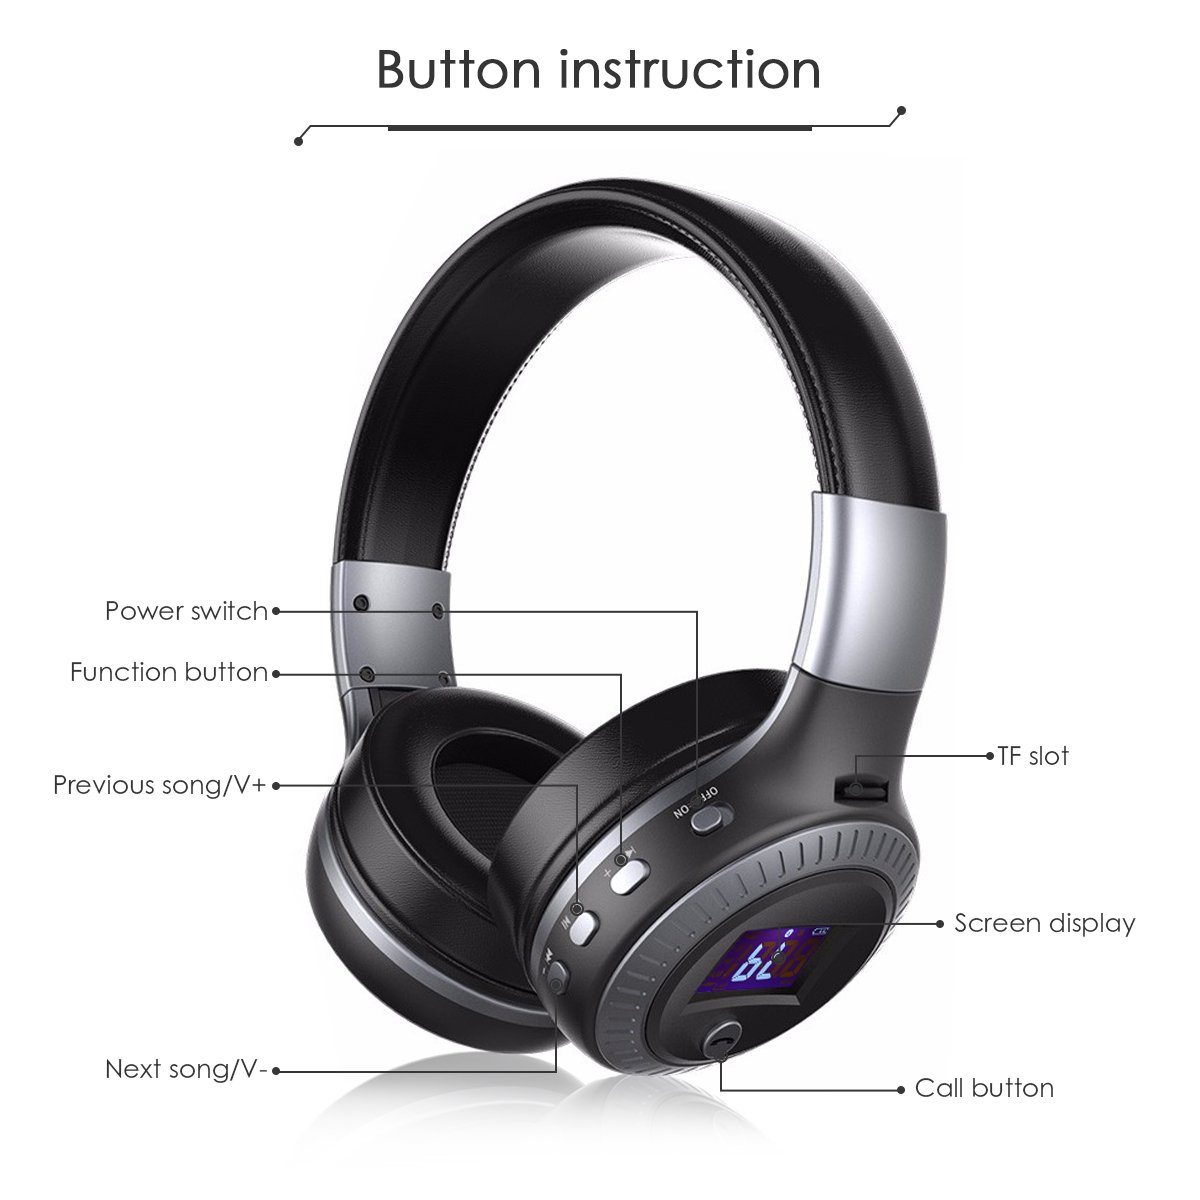 Amazon.com: Over Ear Headphones, EIVOTOR Foldable Wireless Headset with Microphone LCD Display Wired and Wireless Mode for iPhone Android Tablet PC: Home ...